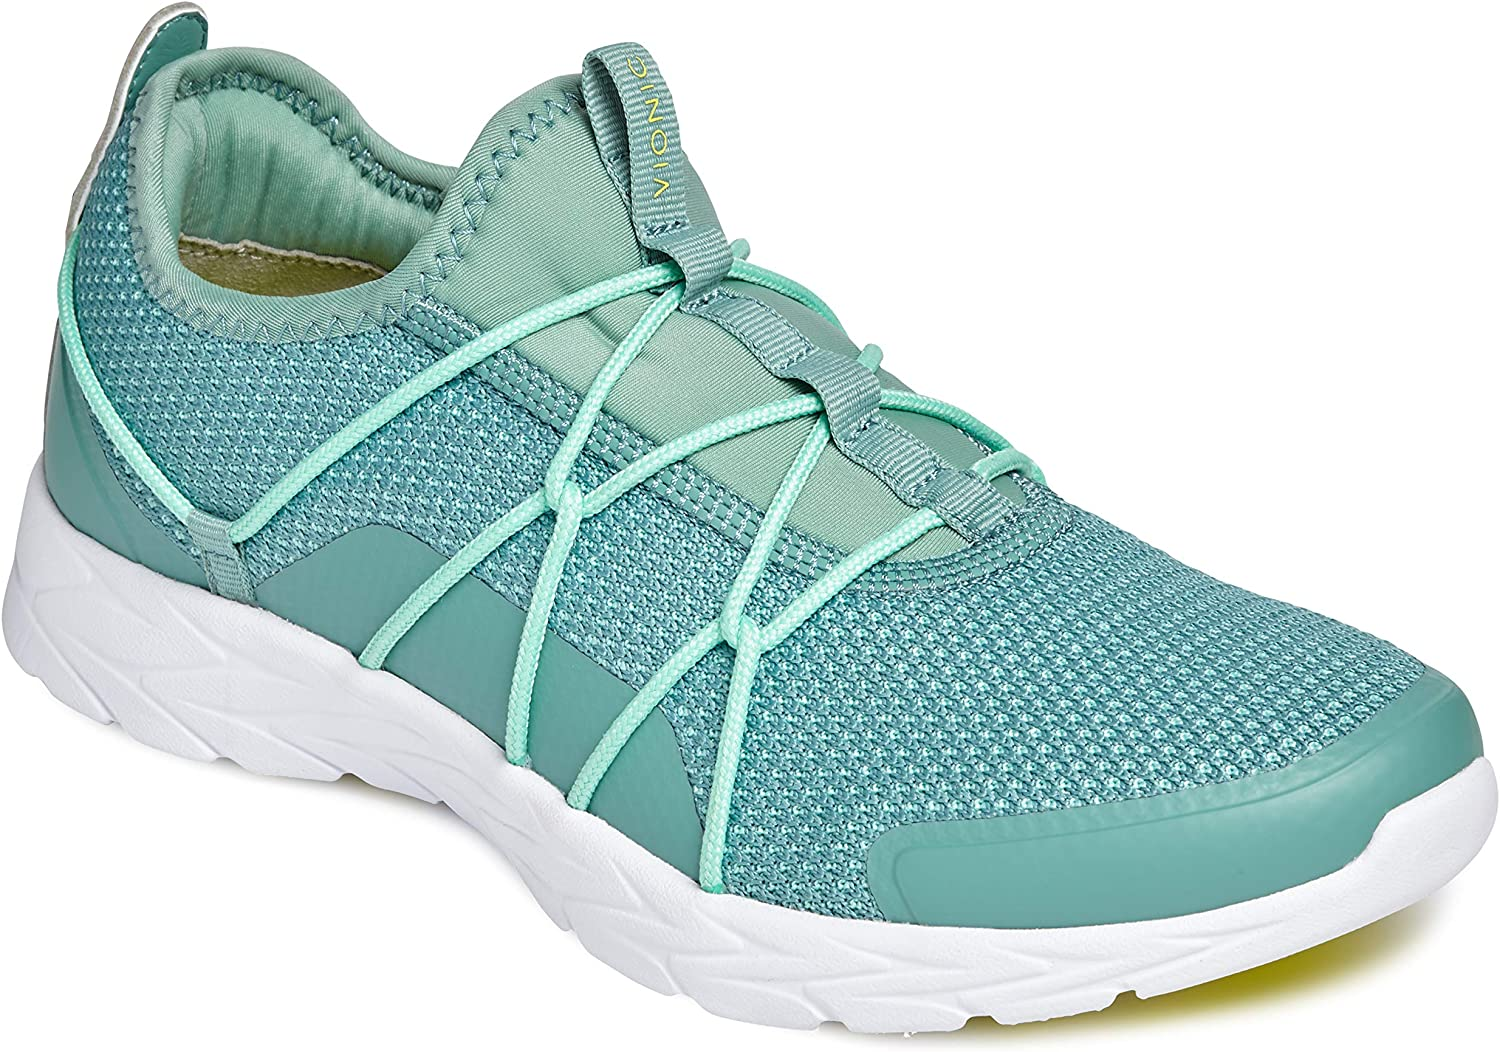 Vionic Womens Brisk Jada Slip-on Walking Shoes Ladies Active Sneakers with Concealed Orthotic Arch Support